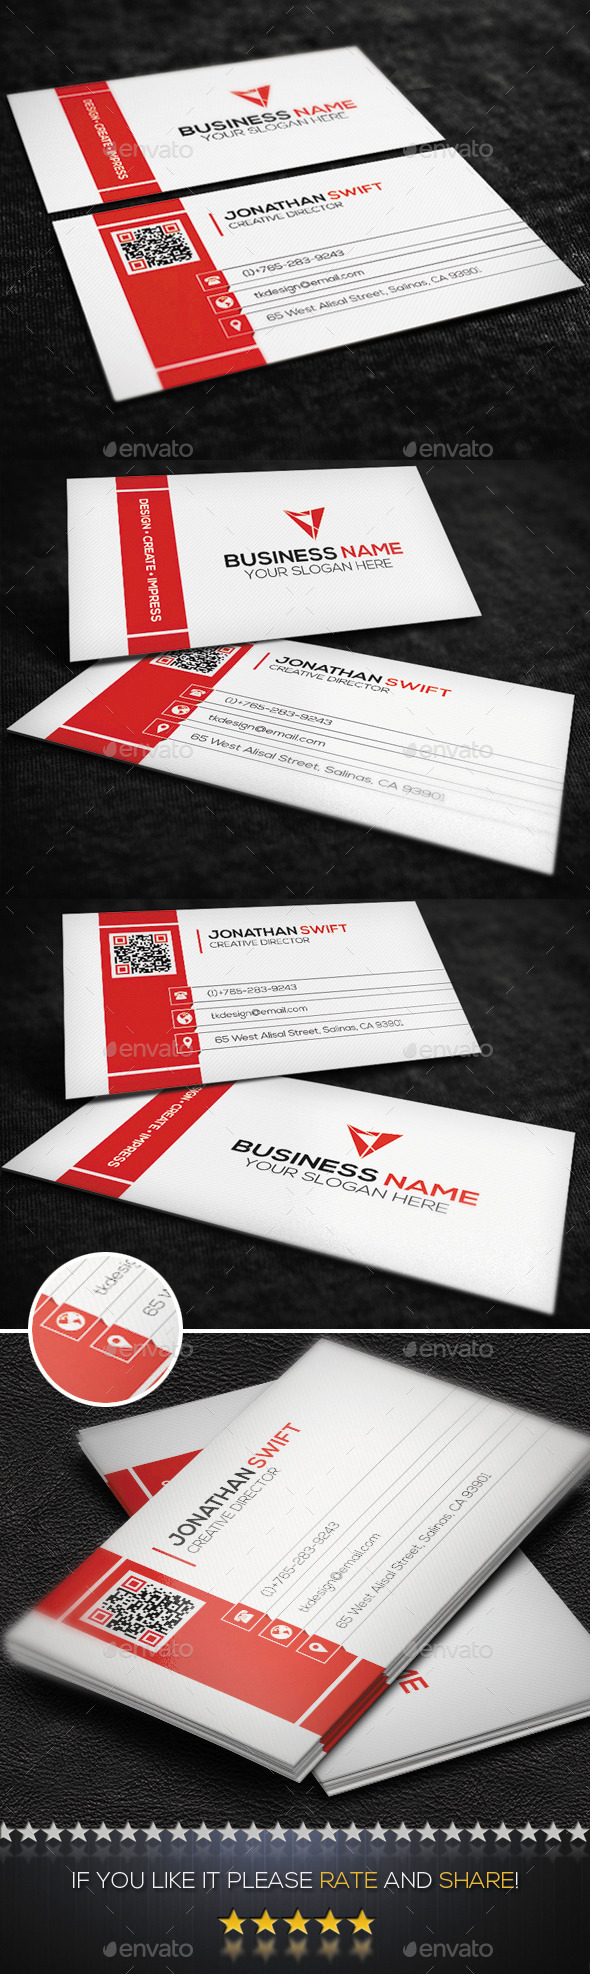 Corporate Business Card No.02 - Corporate Business Cards